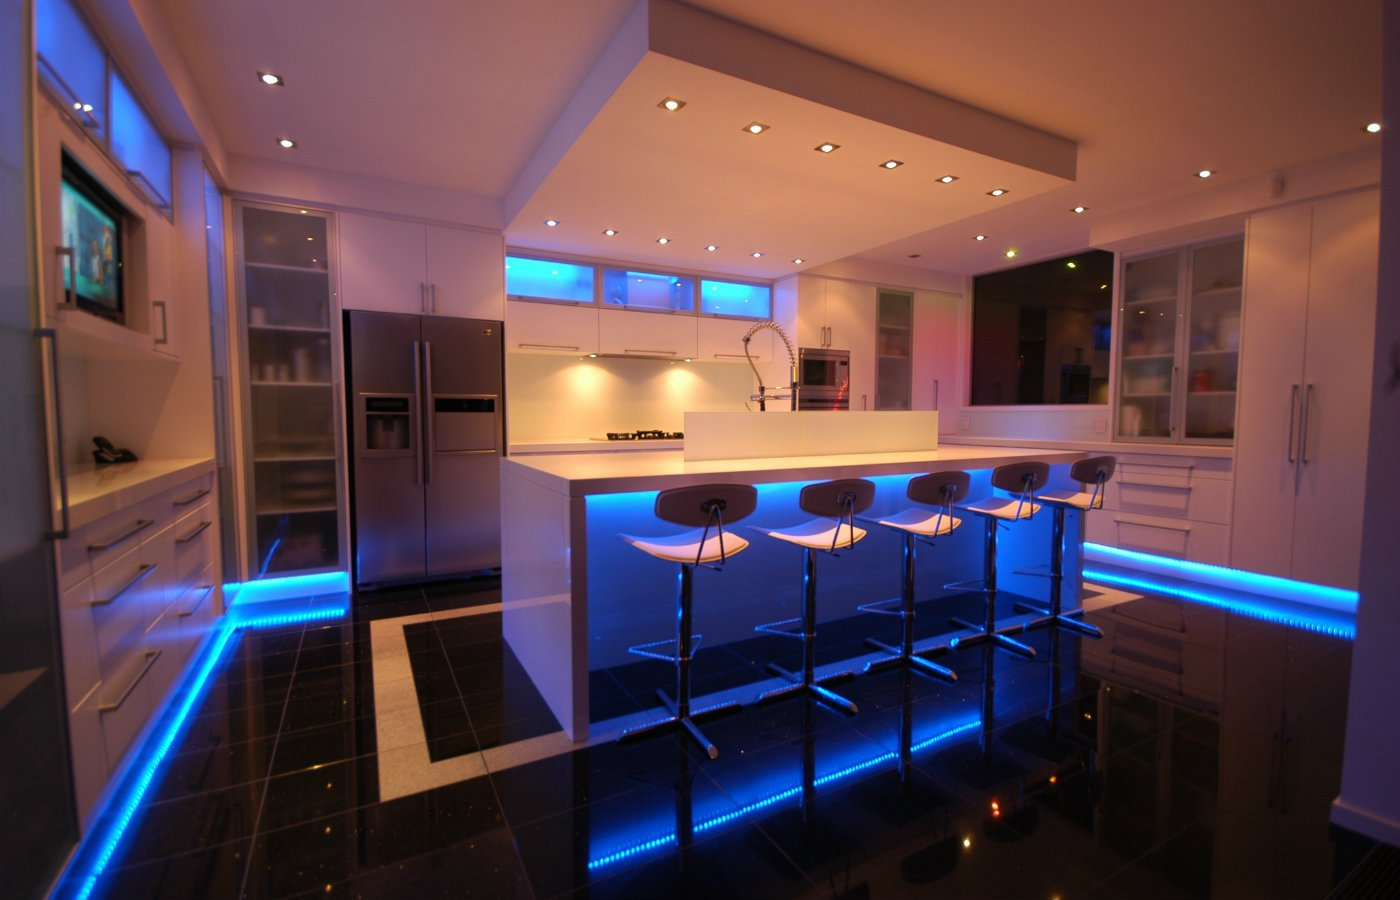 Kitchen lighting design ideas jpg Design Ideas